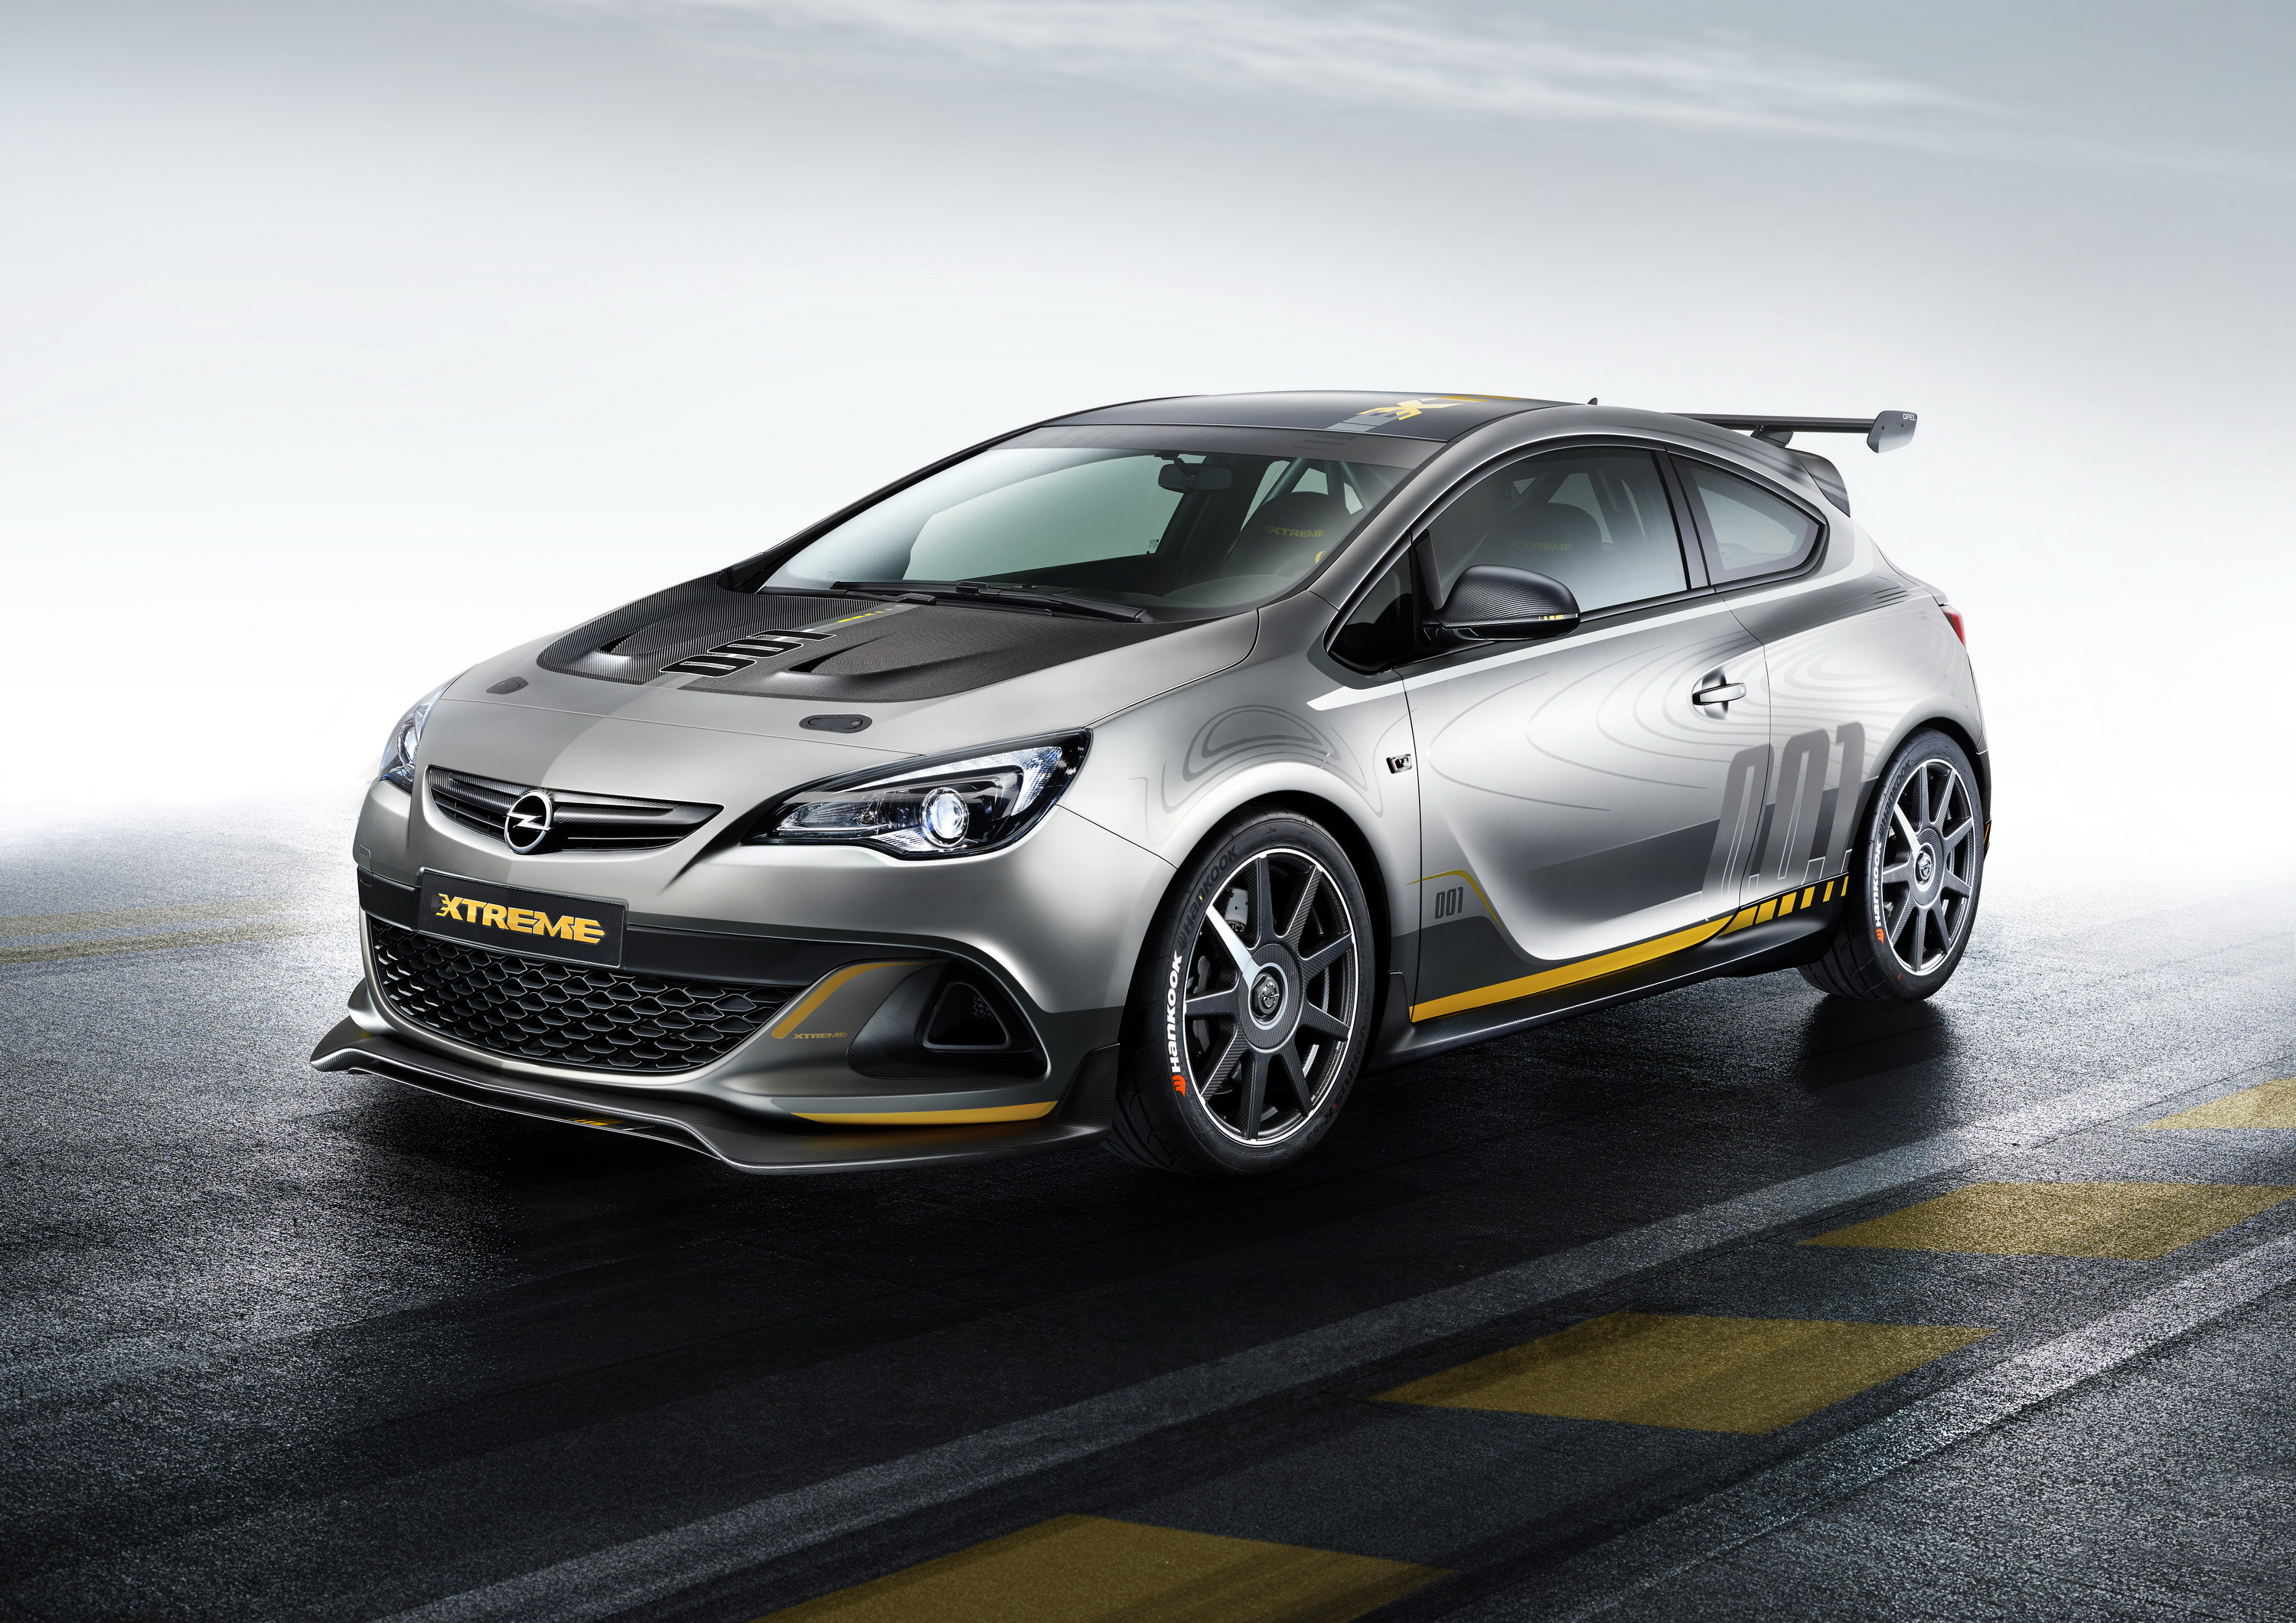 2014 Opel Astra Opc Extreme Top Speed